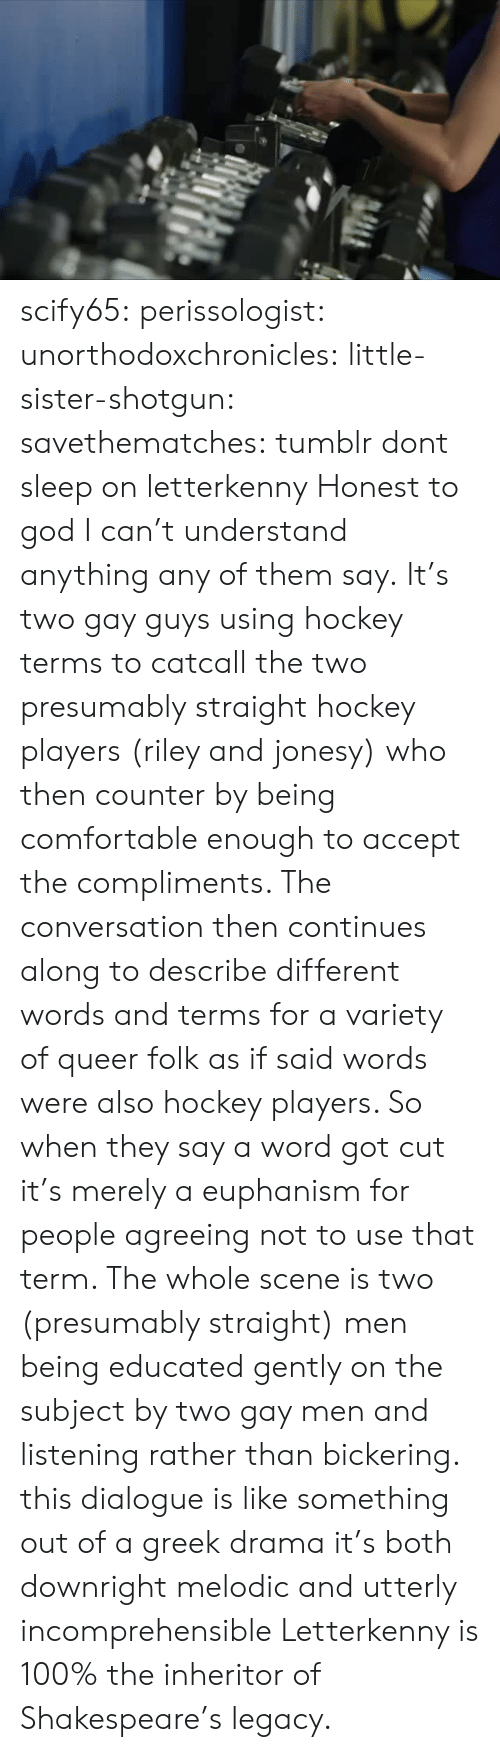 Anaconda, Comfortable, and God: scify65: perissologist:  unorthodoxchronicles:  little-sister-shotgun:  savethematches: tumblr dont sleep on letterkenny  Honest to god I can't understand anything any of them say.  It's two gay guys using hockey terms to catcall the two presumably straight hockey players (riley and jonesy) who then counter by being comfortable enough to accept the compliments. The conversation then continues along to describe different words and terms for a variety of queer folk as if said words were also hockey players. So when they say a word got cut it's merely a euphanism for people agreeing not to use that term. The whole scene is two (presumably straight) men being educated gently on the subject by two gay men and listening rather than bickering.   this dialogue is like something out of a greek drama it's both downright melodic and utterly incomprehensible   Letterkenny is 100% the inheritor of Shakespeare's legacy.